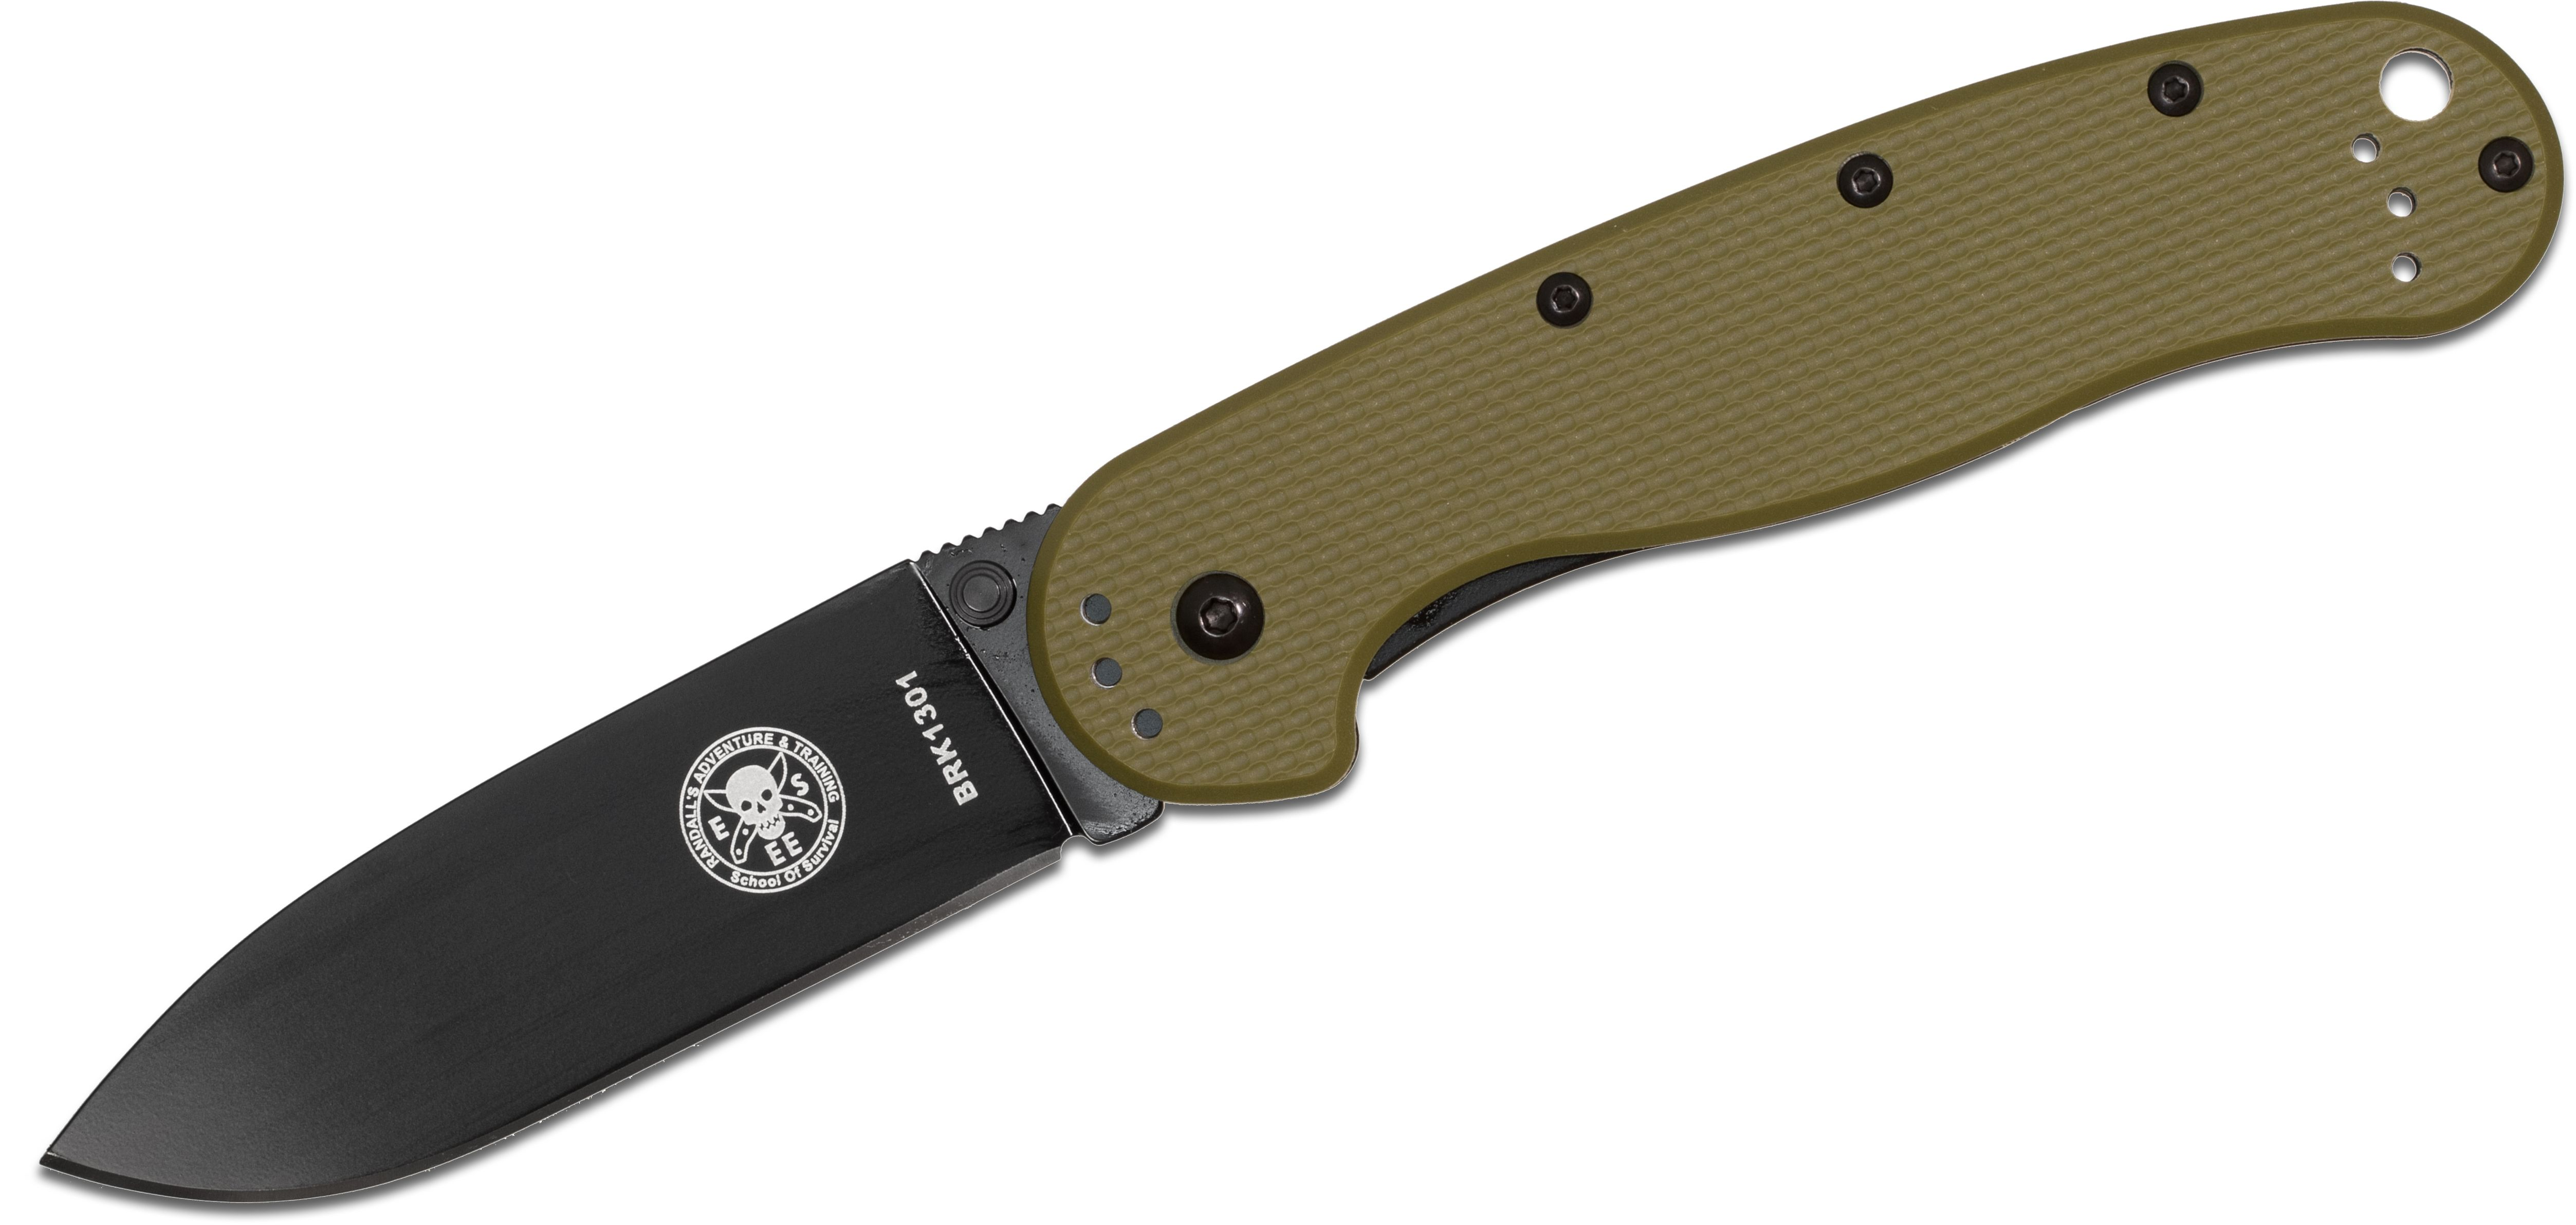 Avispa Folding Knife 3.5 inch Black D2 Blade, Olive Drab FRN and Stainless Steel Handles, Designed by ESEE